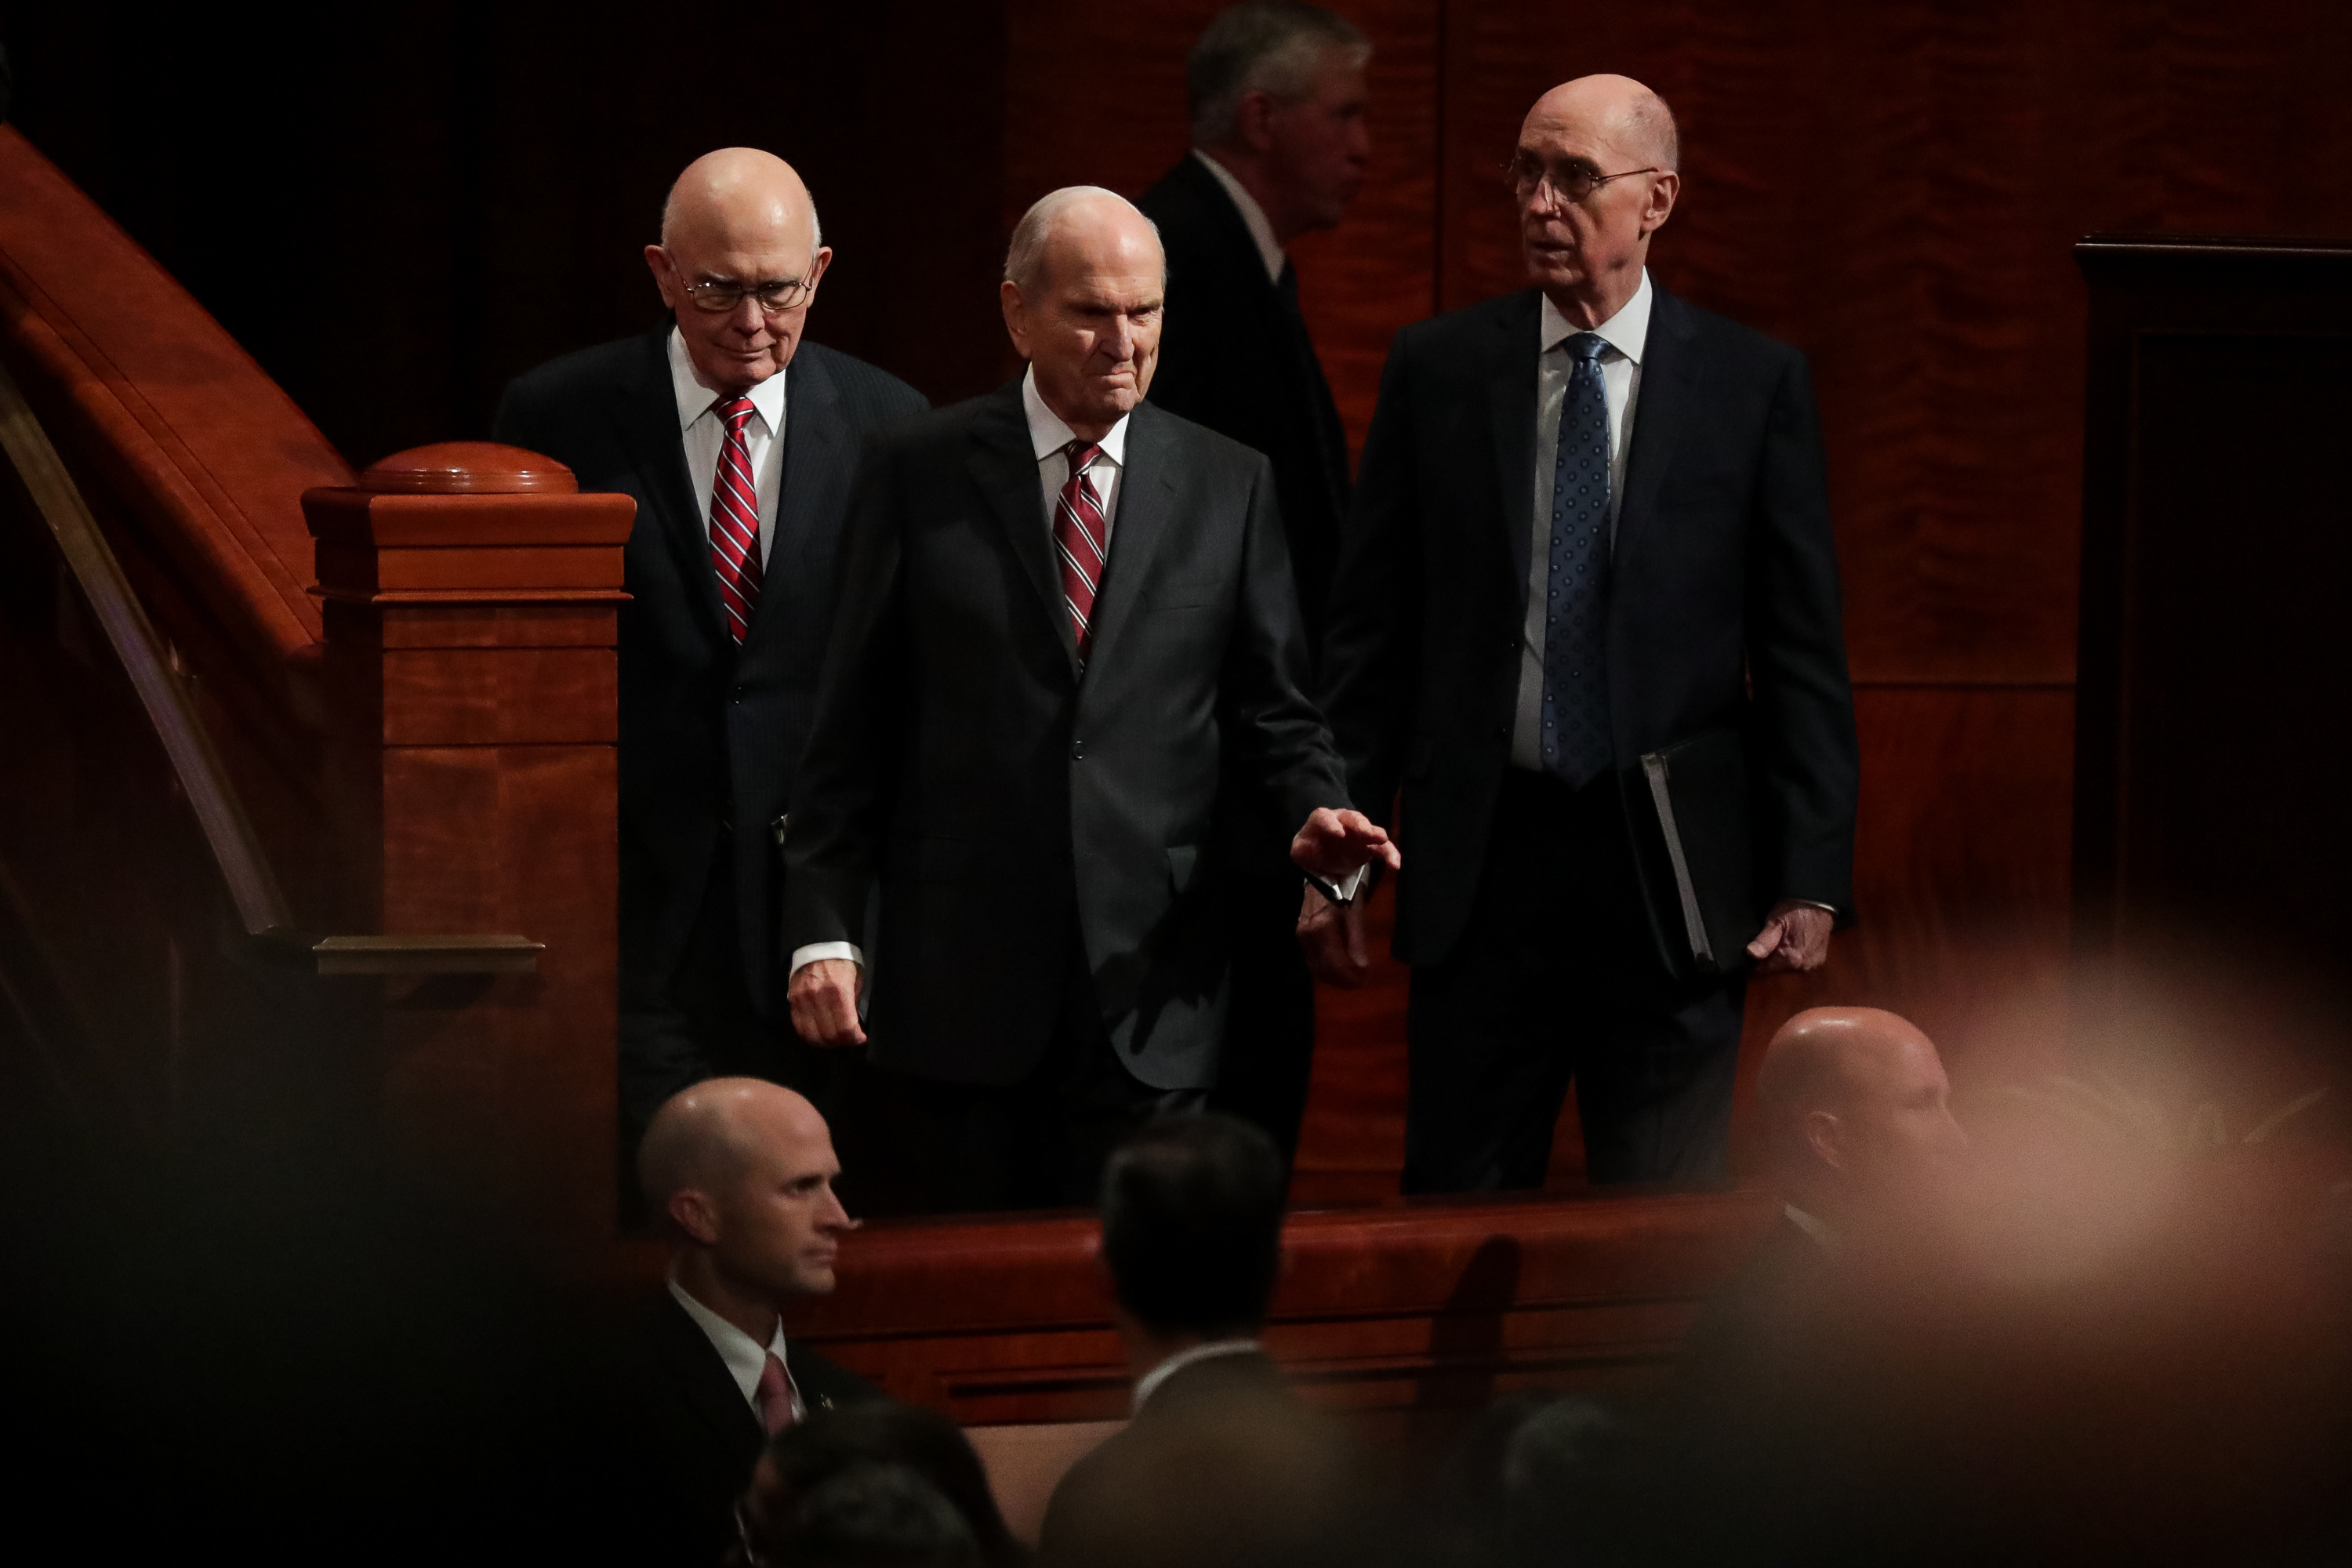 President Russell M. Nelson, center, President Dallin H. Oaks, first counselor in the First Presidency, left, and President Henry B. Eyring, second counselor in the First Presidency, right, arrive for the Saturday afternoon session of the 188th Semiannual General Conference of The Church of Jesus Christ of Latter-day Saints at the Conference Center in Salt Lake City on Saturday, Oct. 6, 2018.